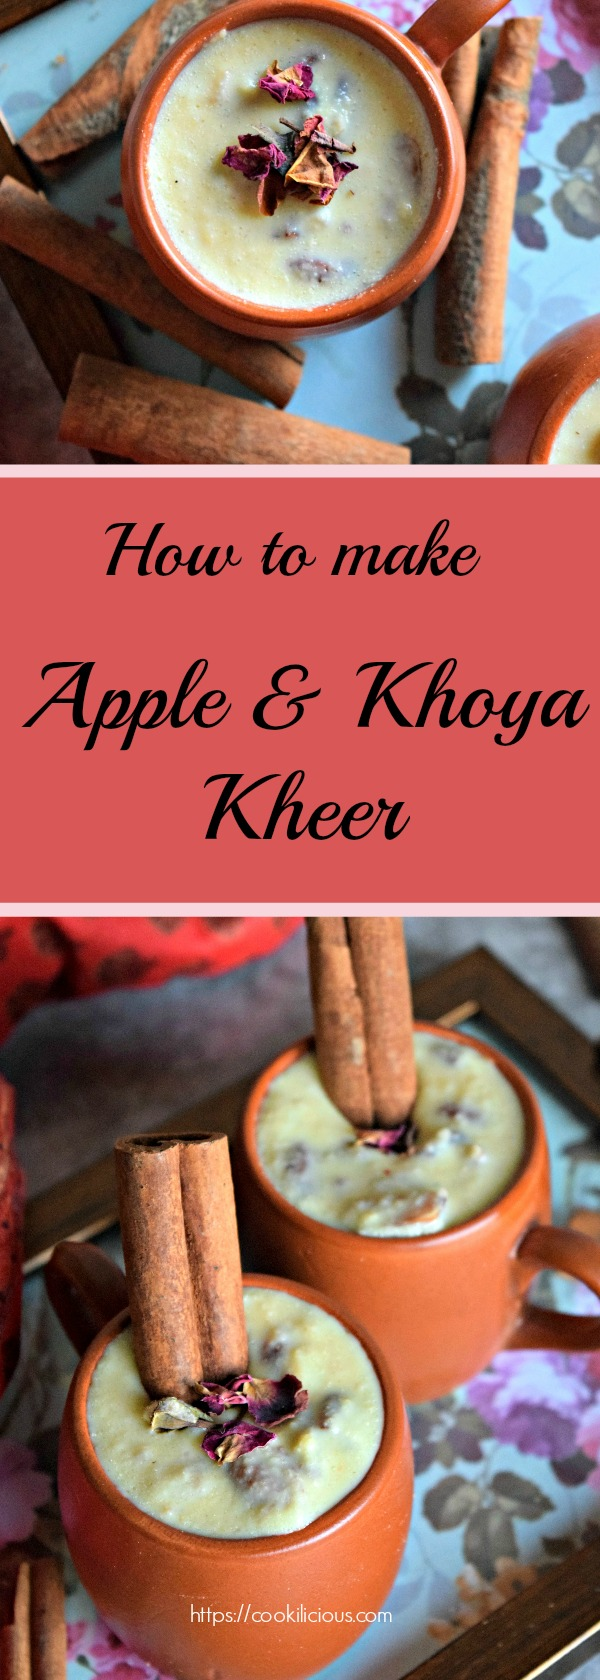 Apple Khoya Kheer - An Indian Dessert!Desserts